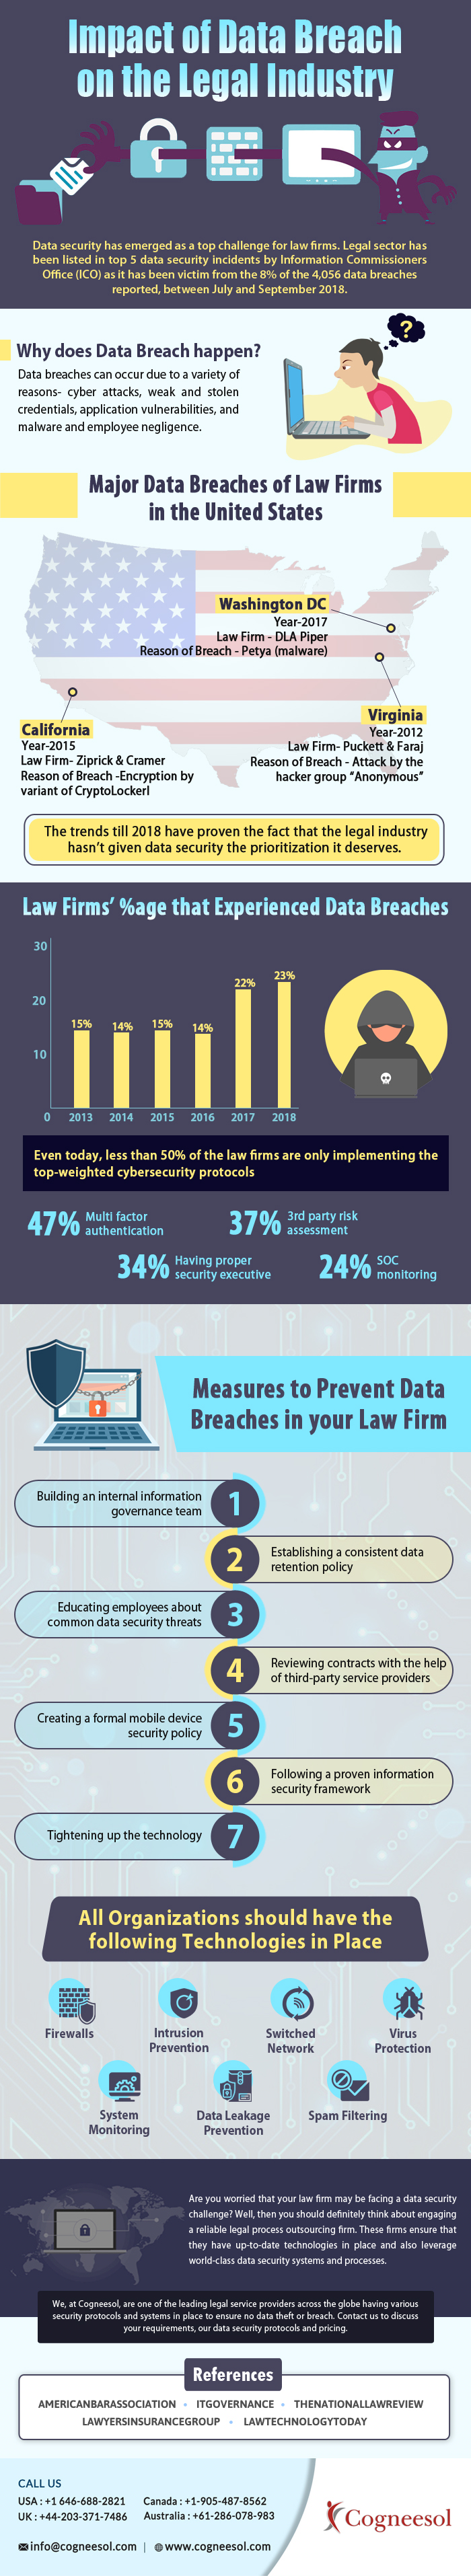 Impact of Data Breach on the Legal Industry